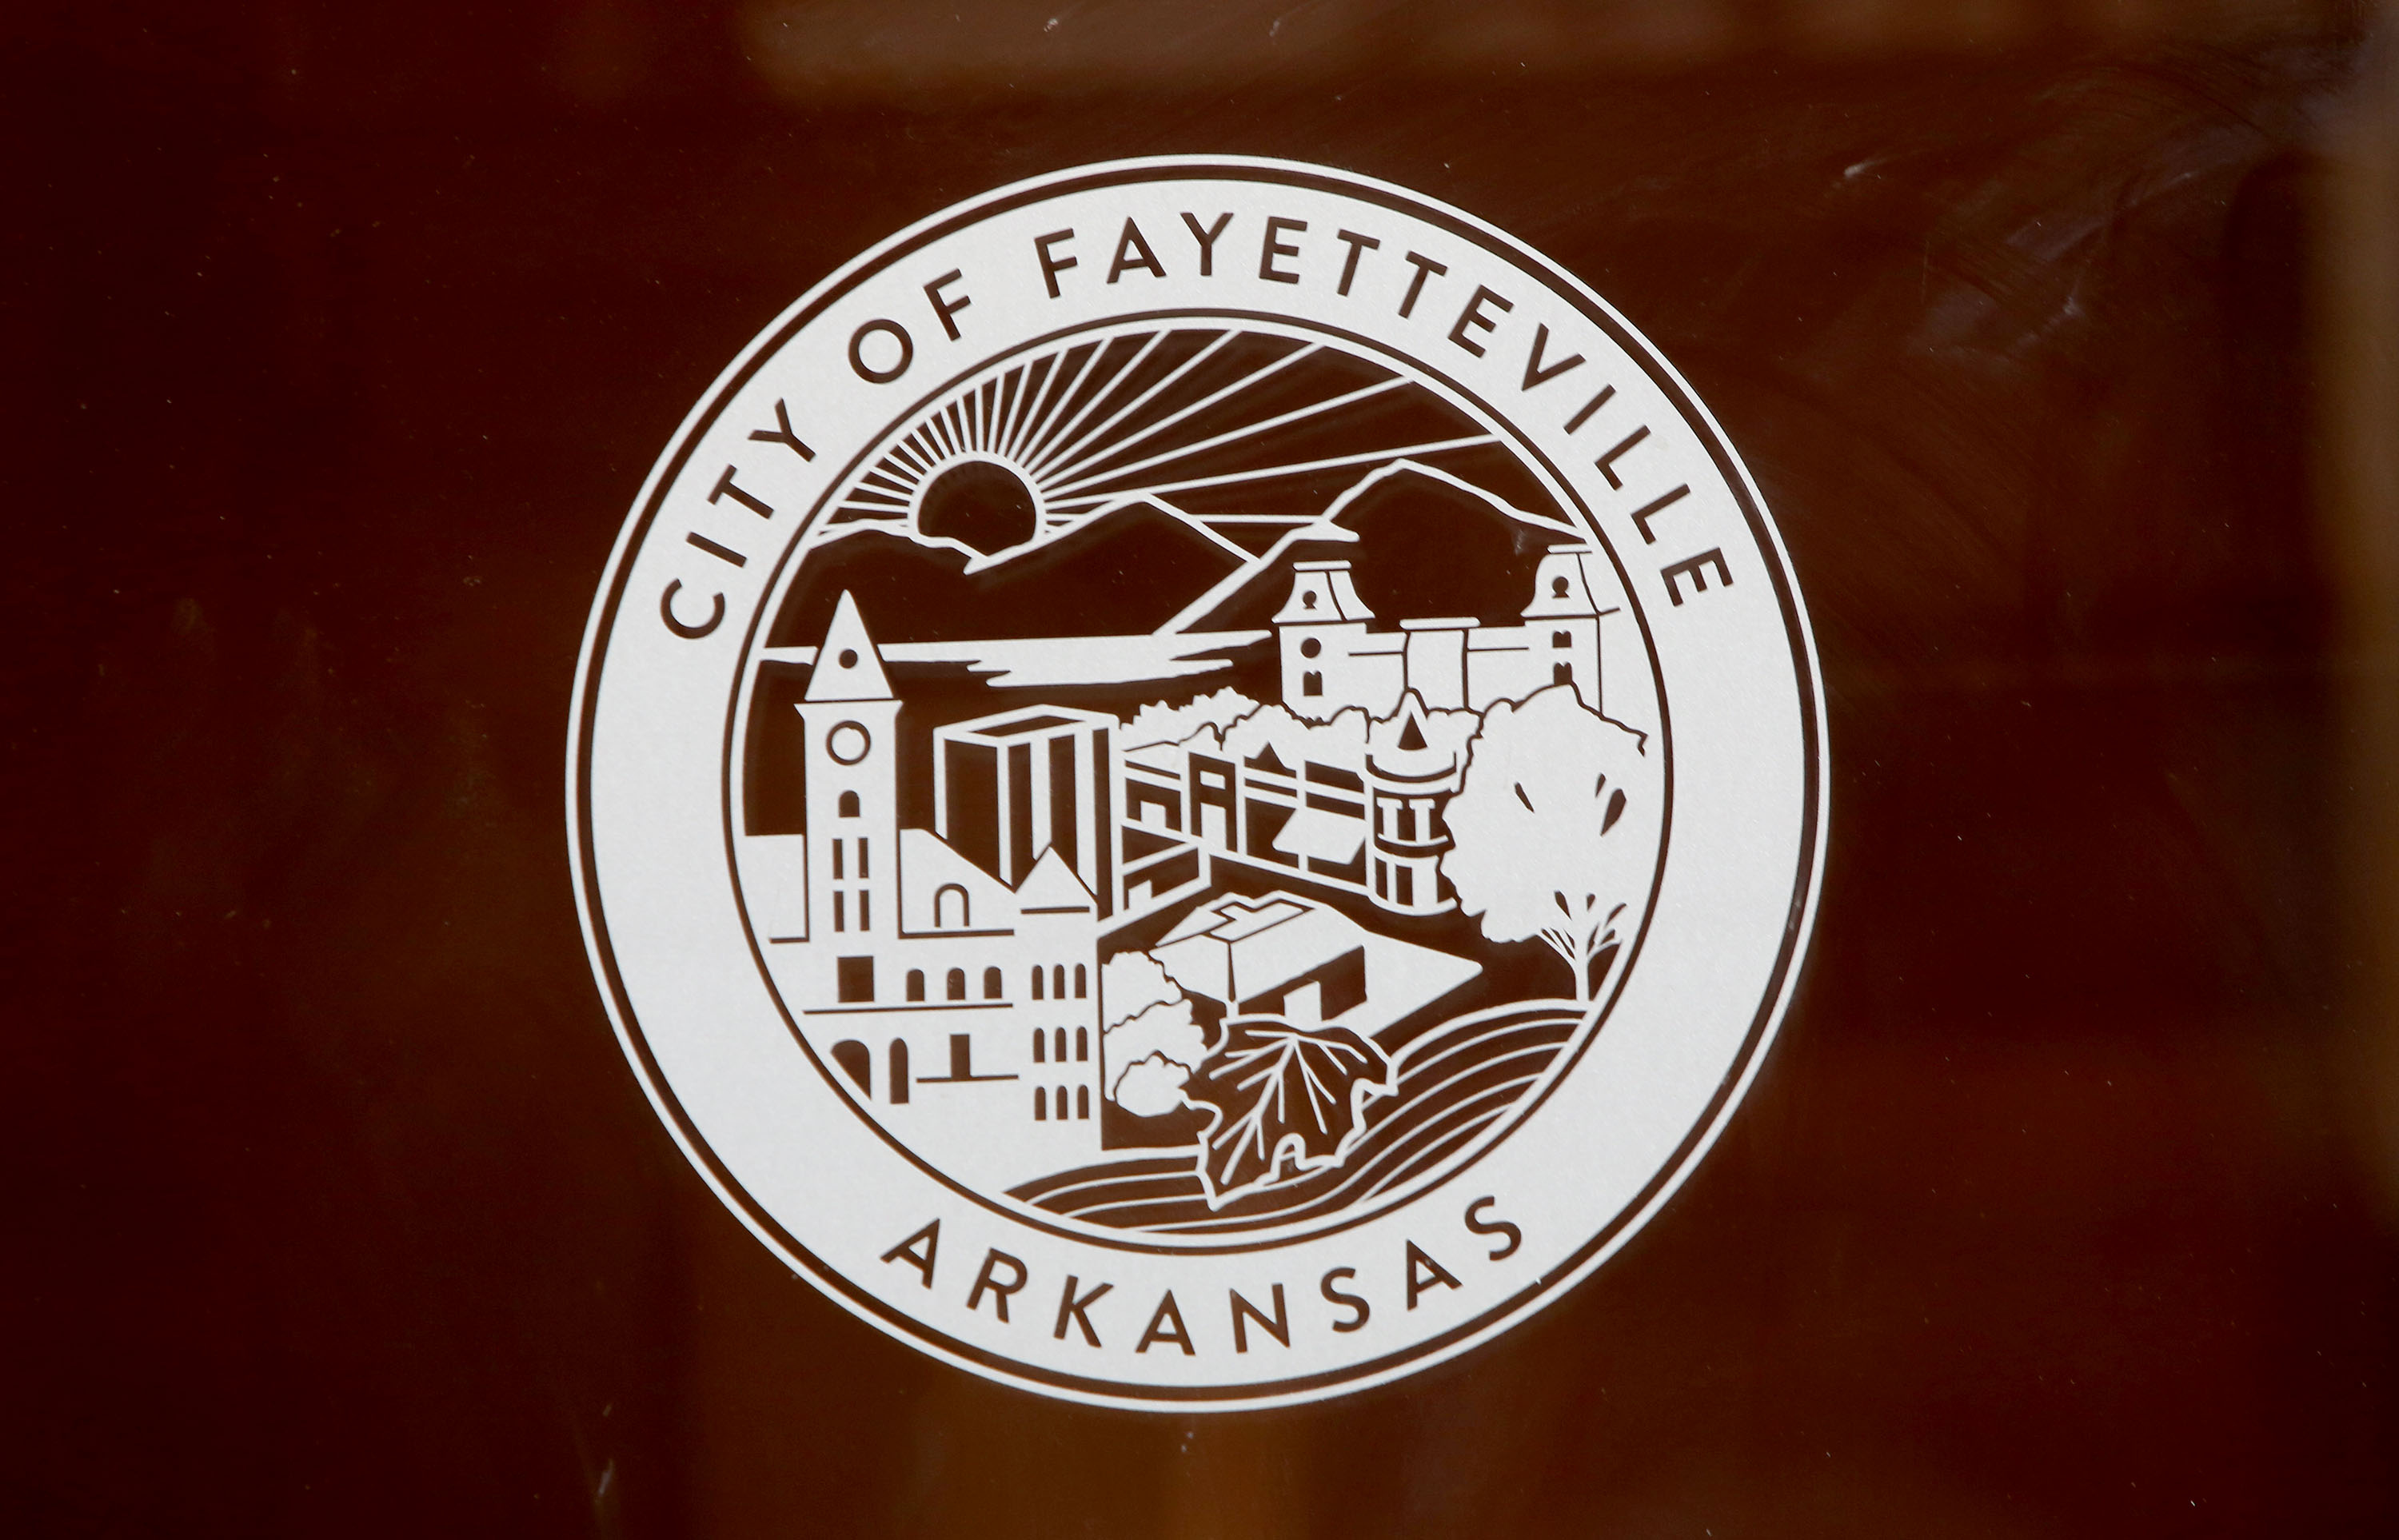 Oral arguments delayed in Fayetteville civil rights ordinance case